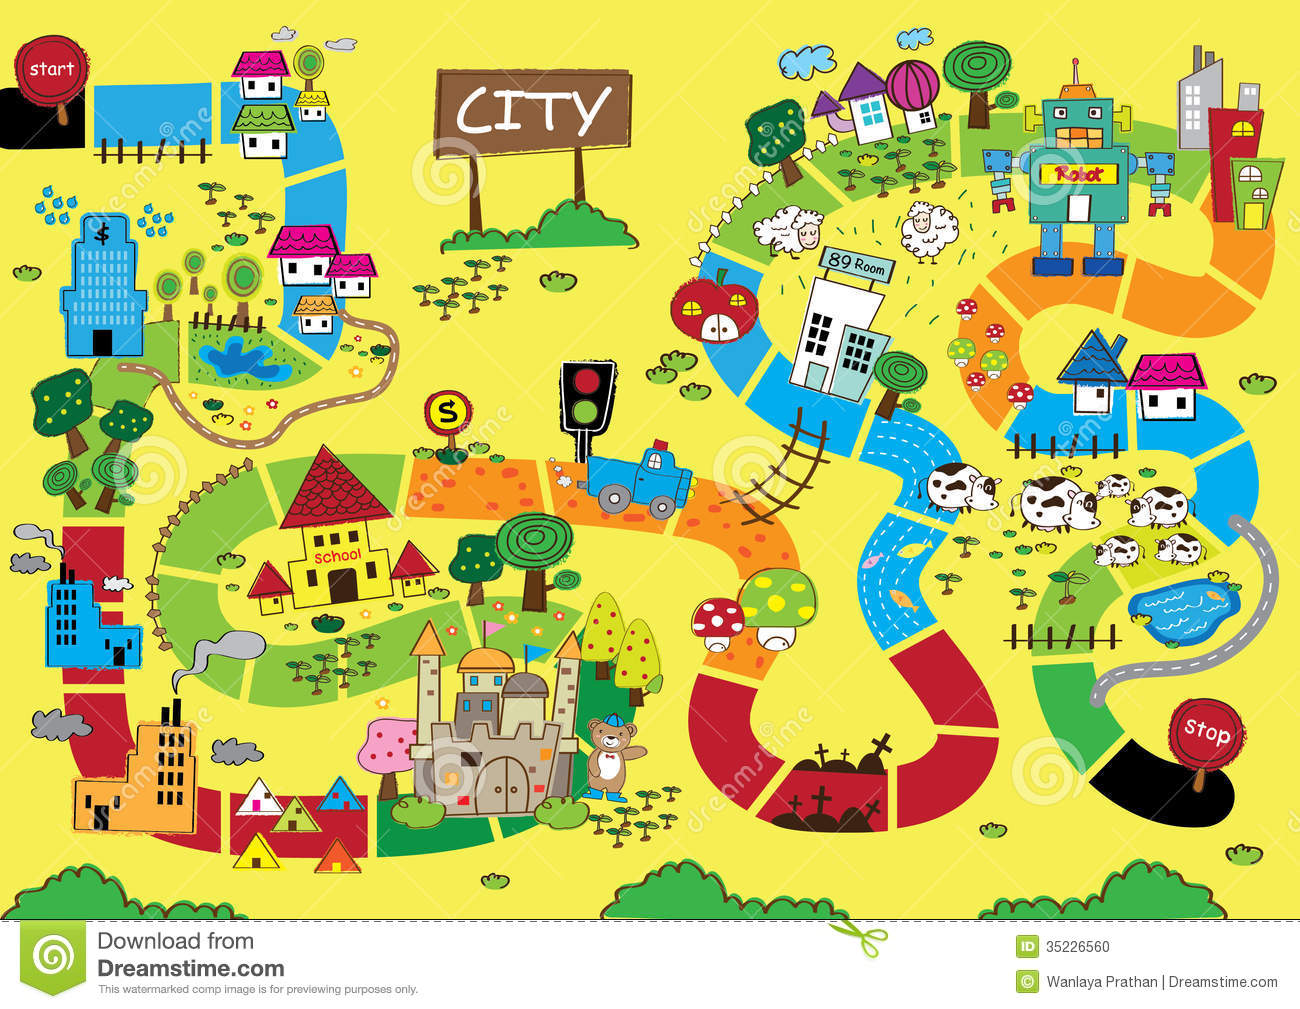 Catoon Map Of City Stock Photo - Image: 35226560